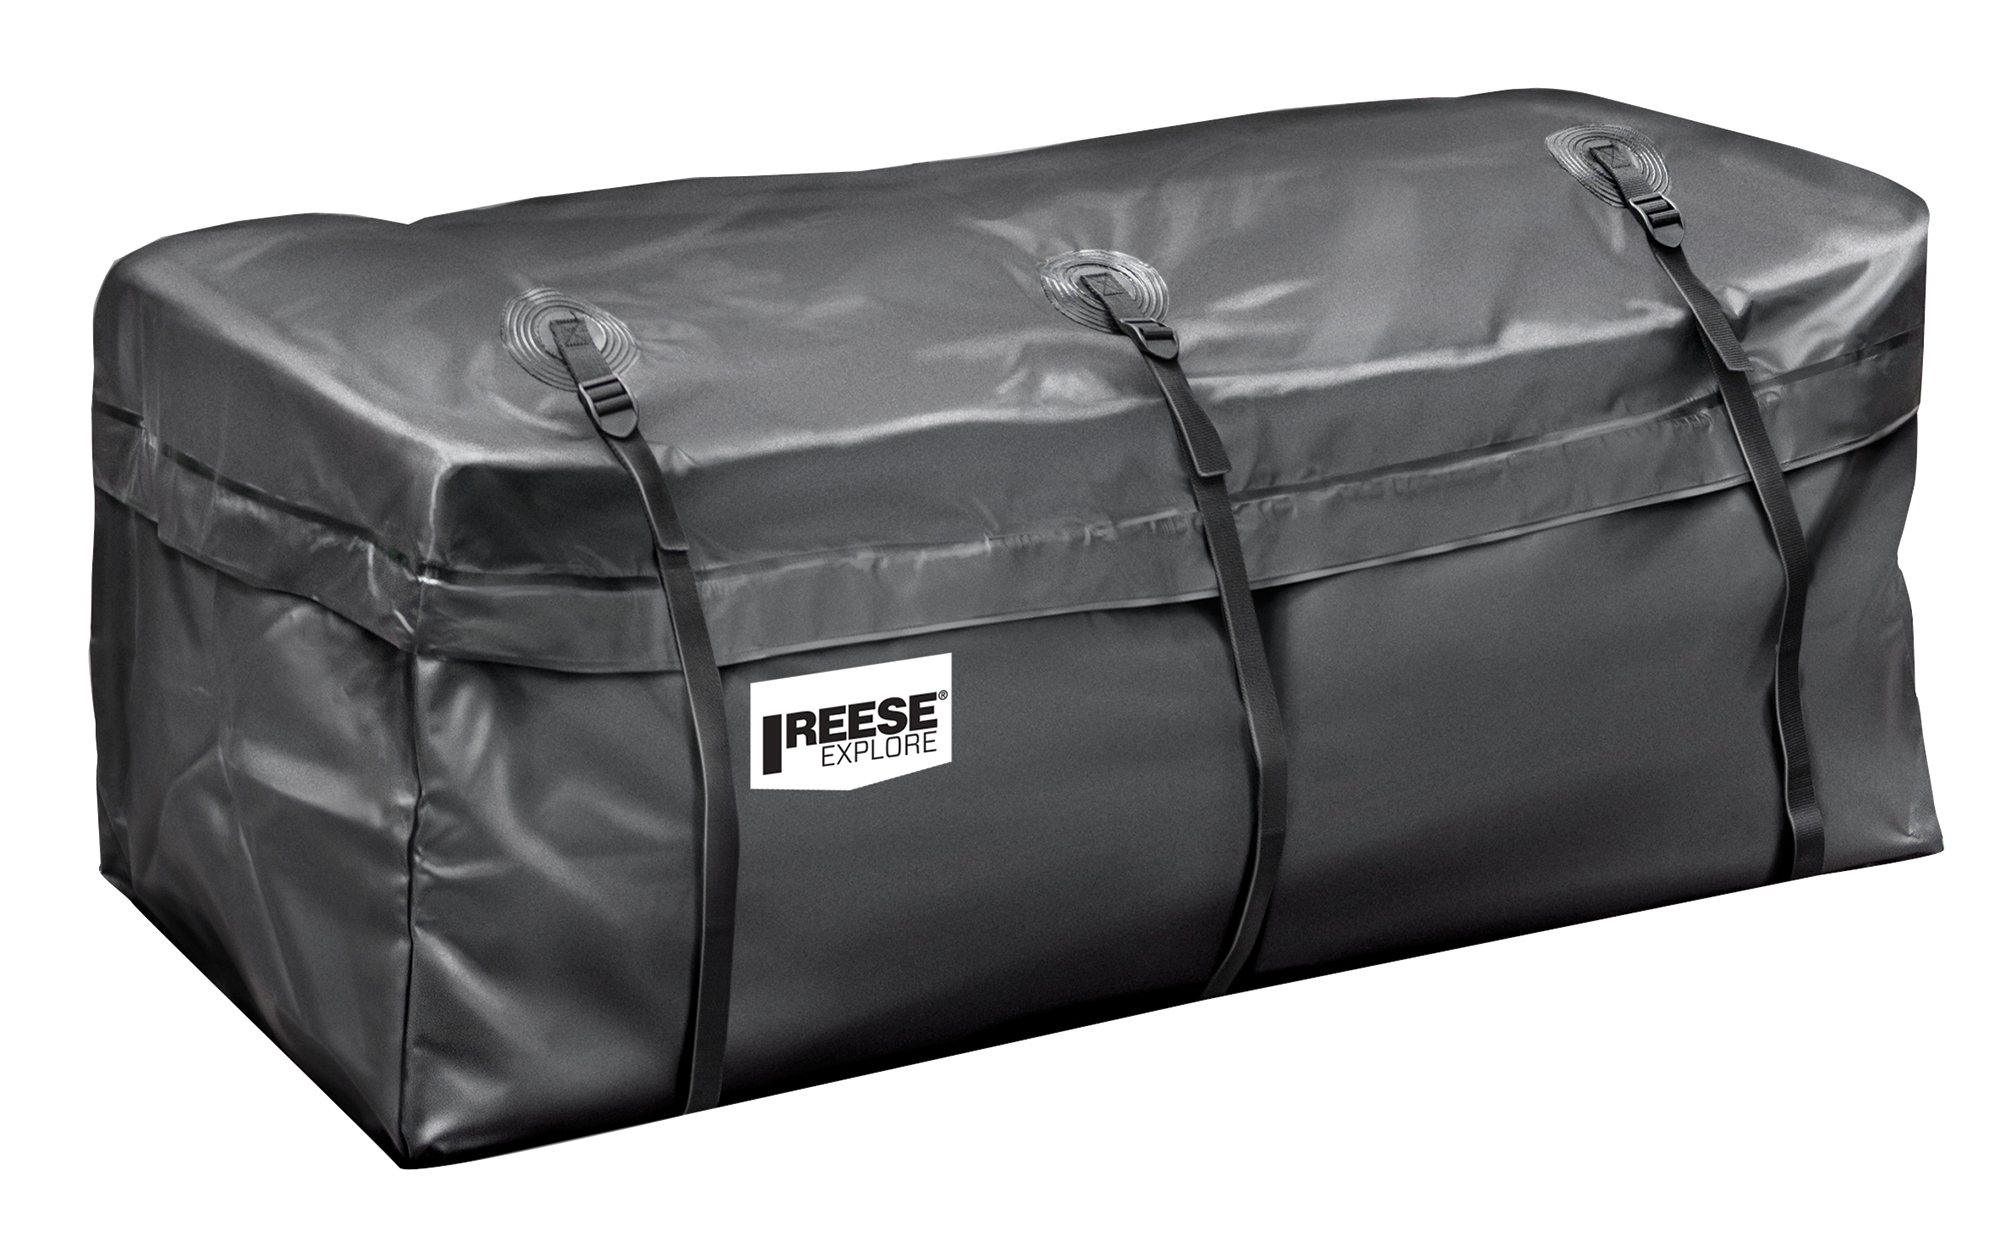 Reese Explore 1043000 Rainproof Cargo Tray Bag by Reese Explore